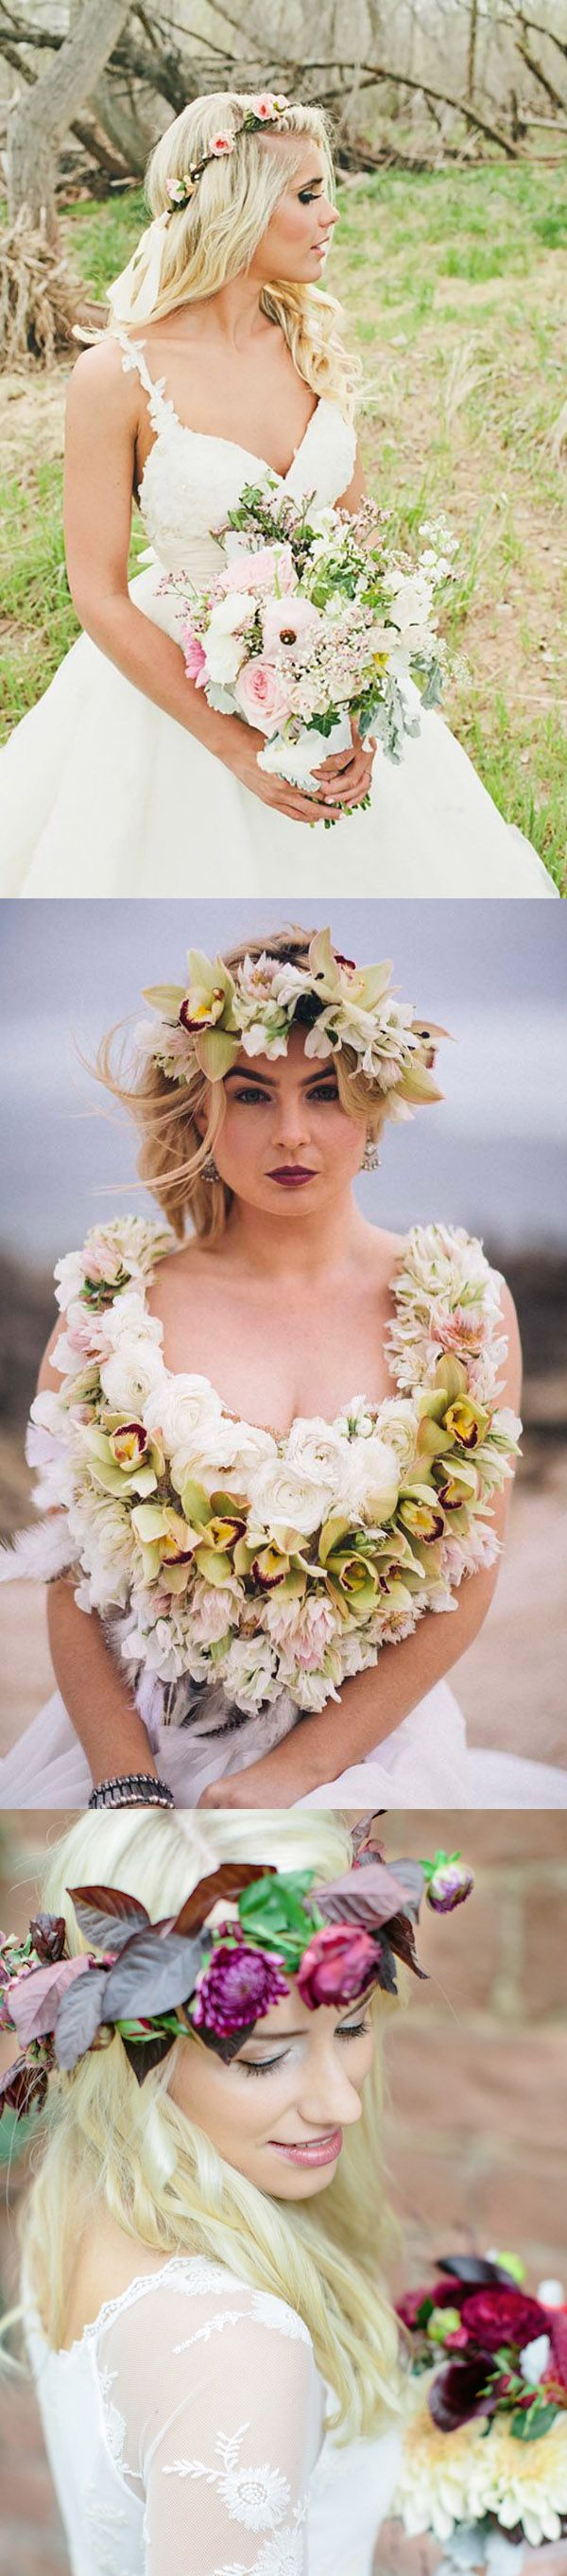 37 Beautiful Wedding Hairstyles With Flowers for Brides & Bridesmaids for your special day like Wedding & bachelorette Parties or Weddign Reception. We have handpicked some of the best Styles like Half Up, Half down, For Long, Medium Length or Short Hair, Curls & Long Curly, Updo, Viel, Head Bands, Floral Crowns / crown, Low Buns, Bridal Headpieces & Fascinators, Tiaras etc. They are Vintage, Simple yet fun & perfect for both Bride, Bridesmaid & even for Mother of Bride.